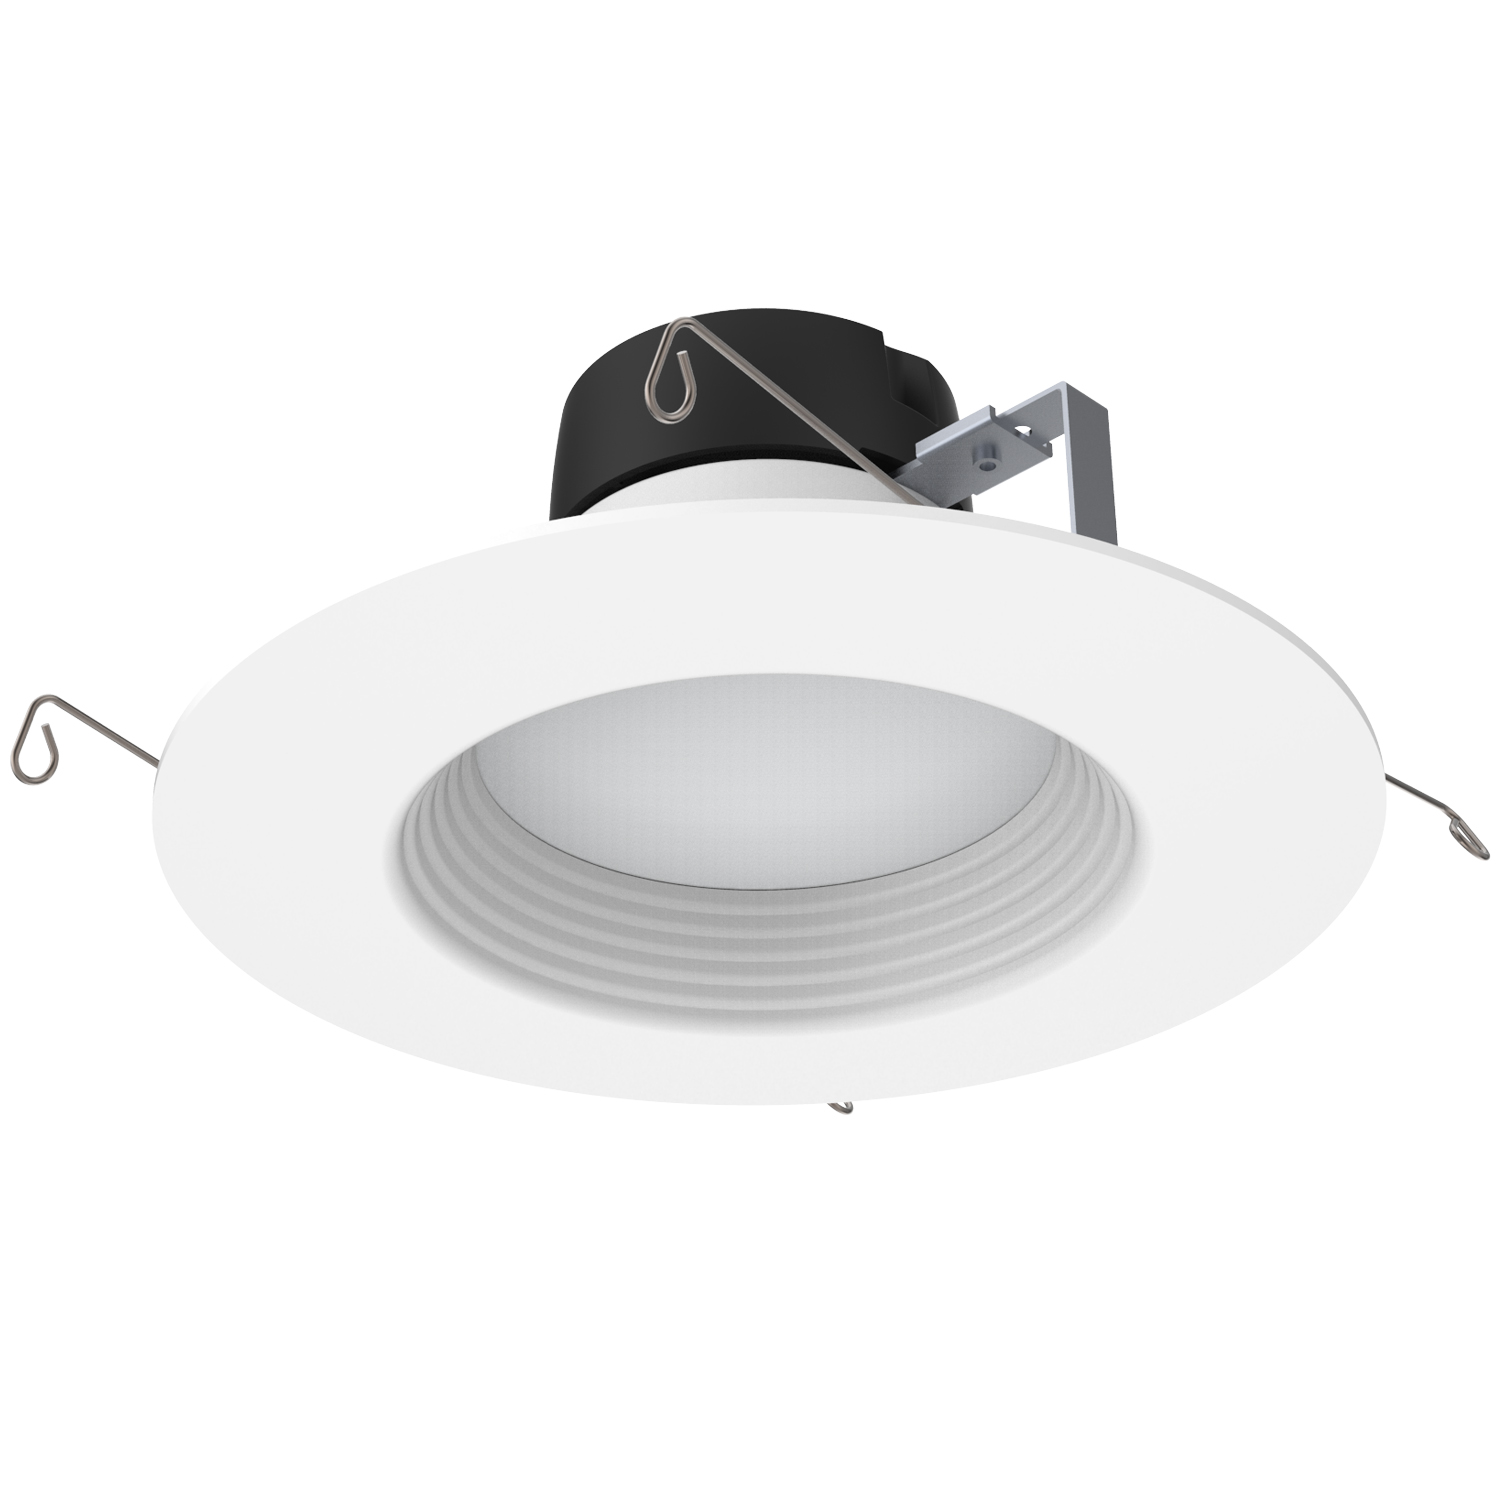 "DL6FR12/927/RT2/LED 99819 5""-6"" LED RETROFIT DOWNLIGHT 12W 2700K DIMMABLE E26 REPLACEABLE-WHITE TRIM-WHITE BAFFLE"